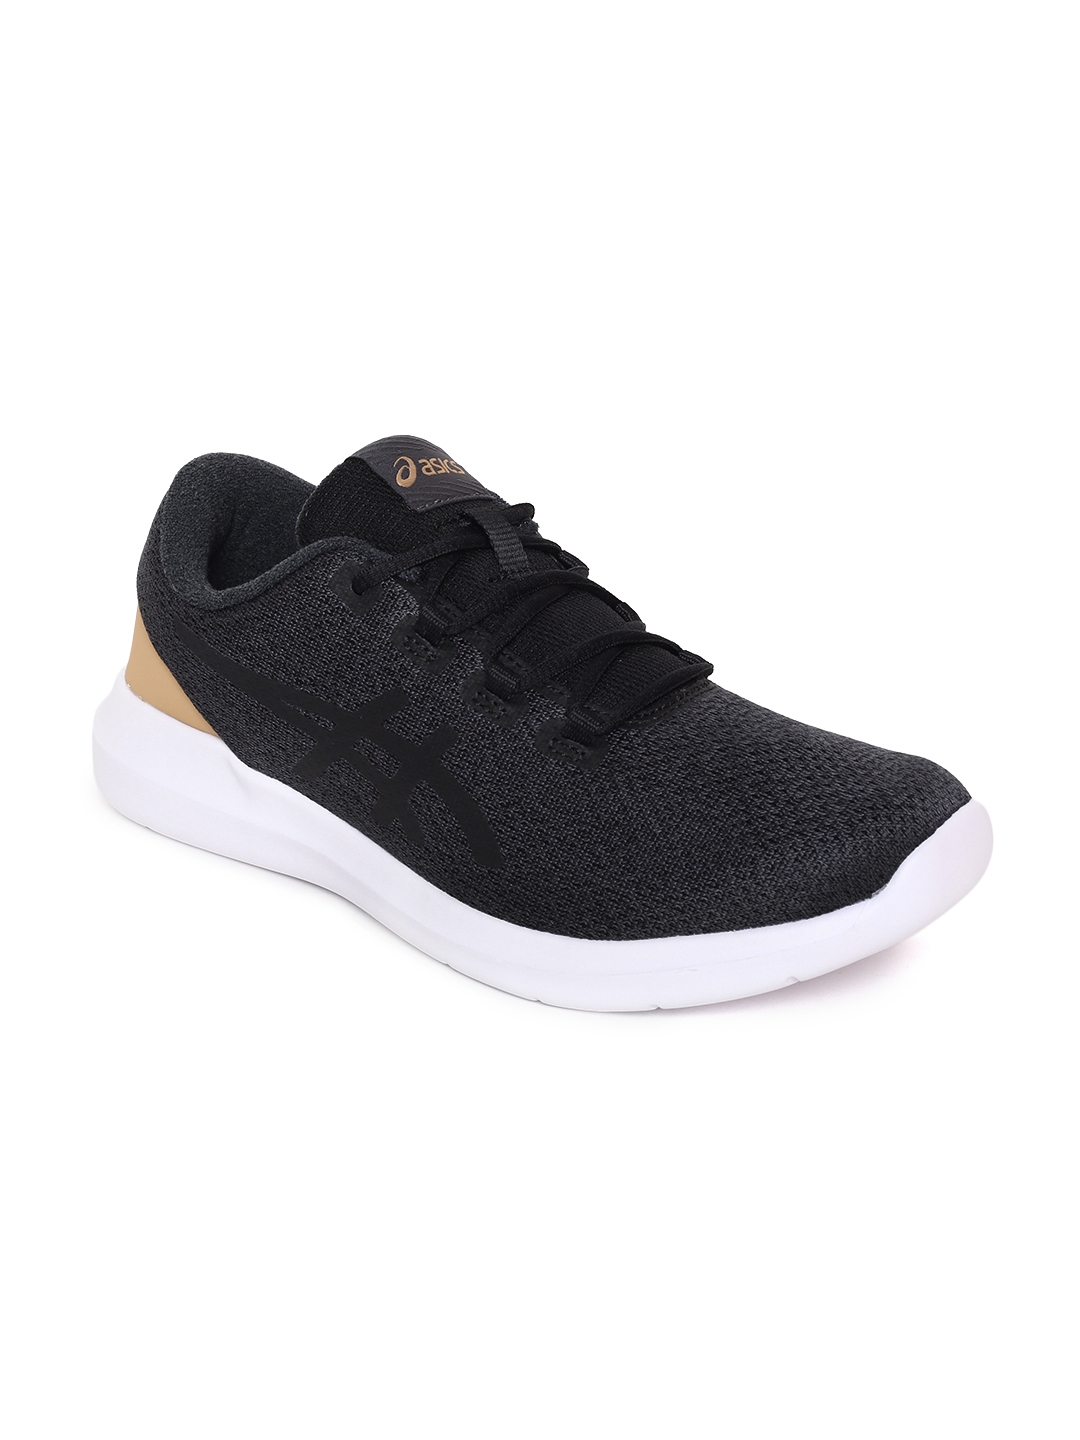 For 2249/-(50% Off) Flat 50-60% Off On Asics Shoes at Myntra